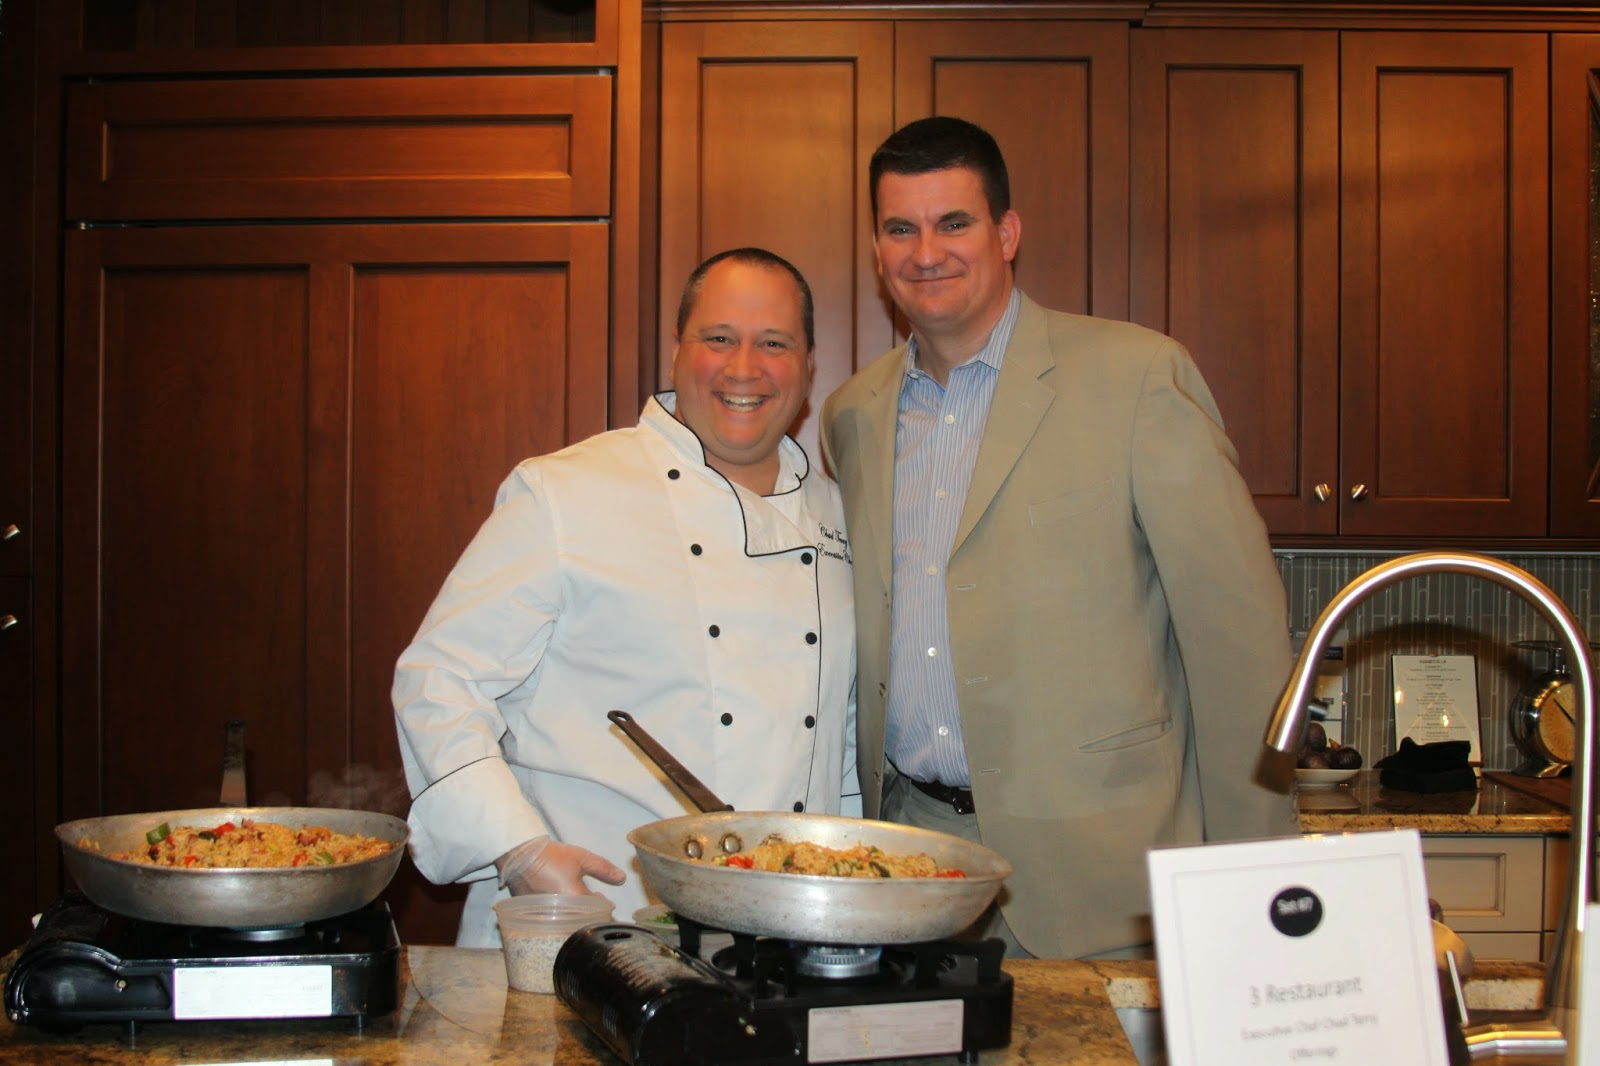 Pictured from Franklin's 3 Restaurant are Executive Chef Chad Terry and General Manager Brian Ravella